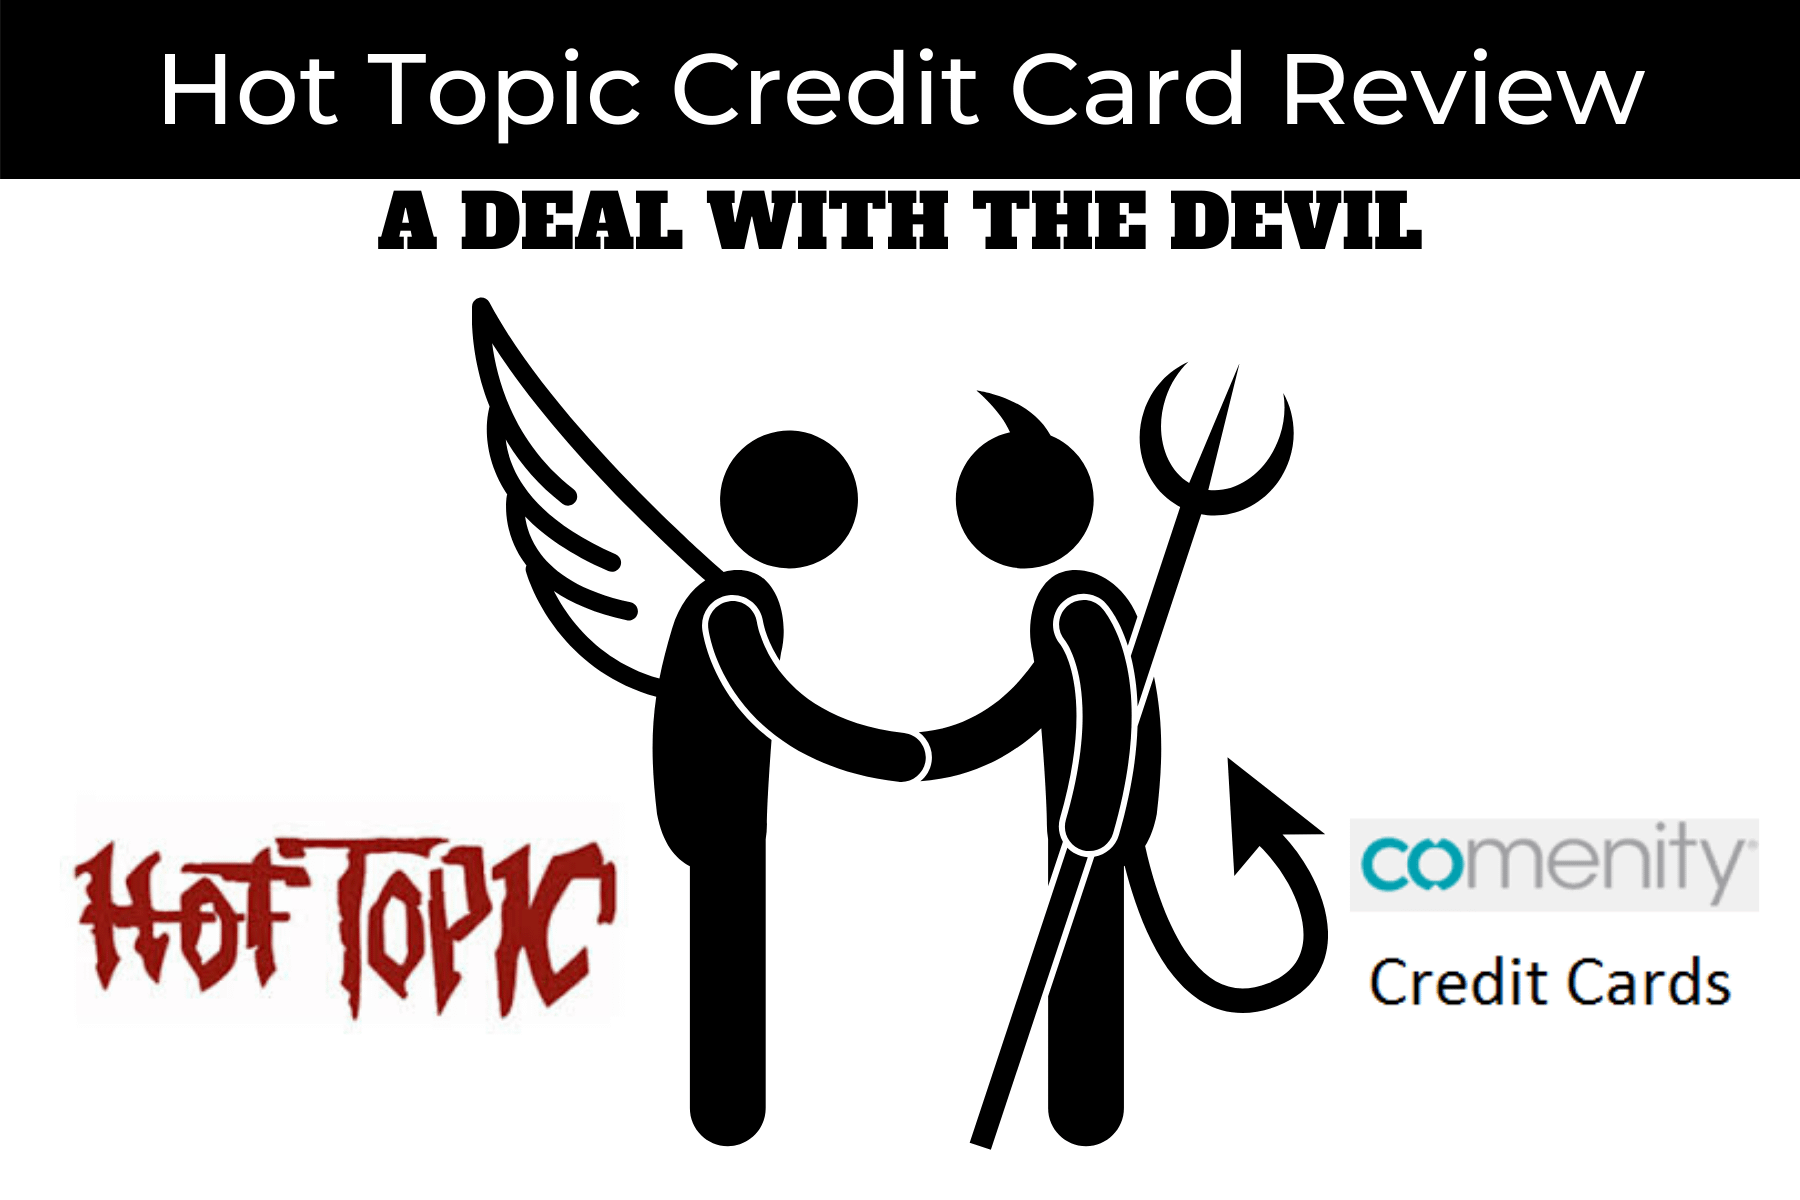 Comenity Hot Topic Credit Card, Hot Topic Comenity Bank Credit Card, Comenity Hot Topic Card